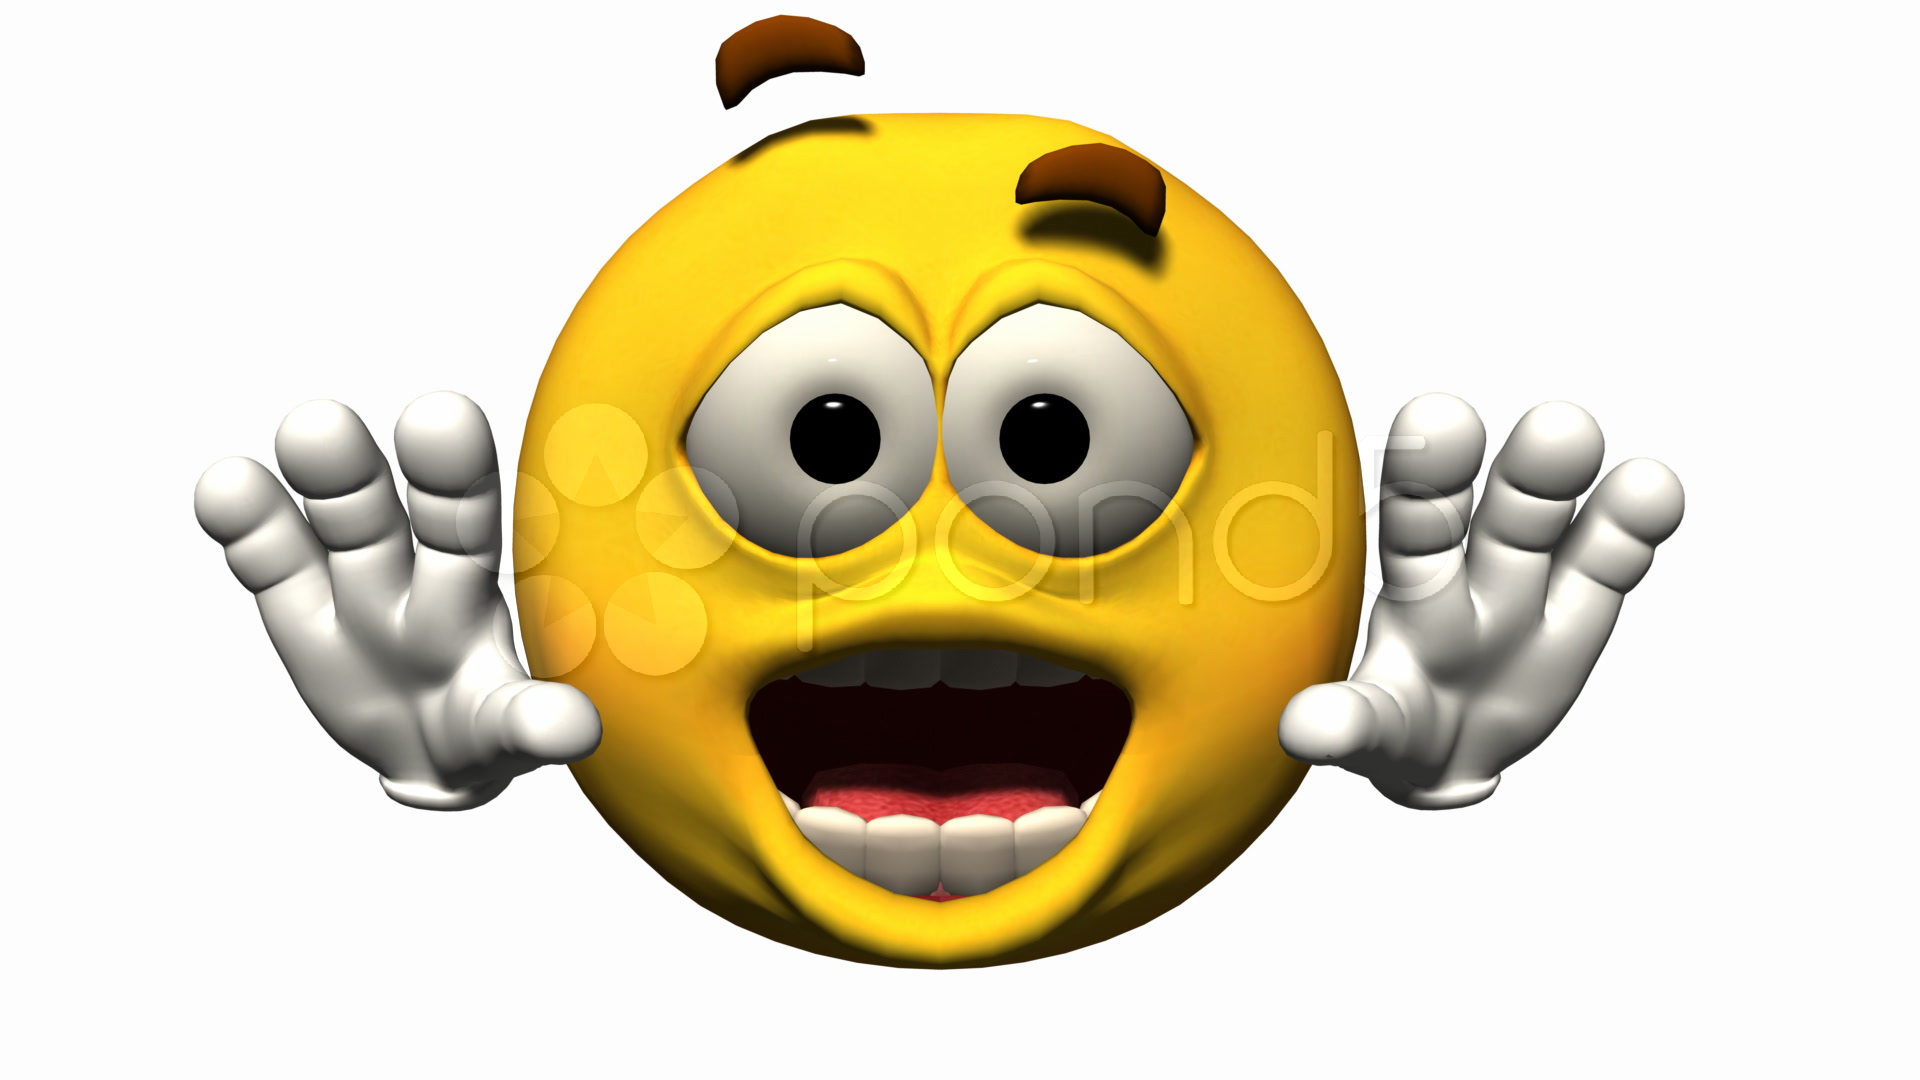 3D Animated Emoticons Same Time